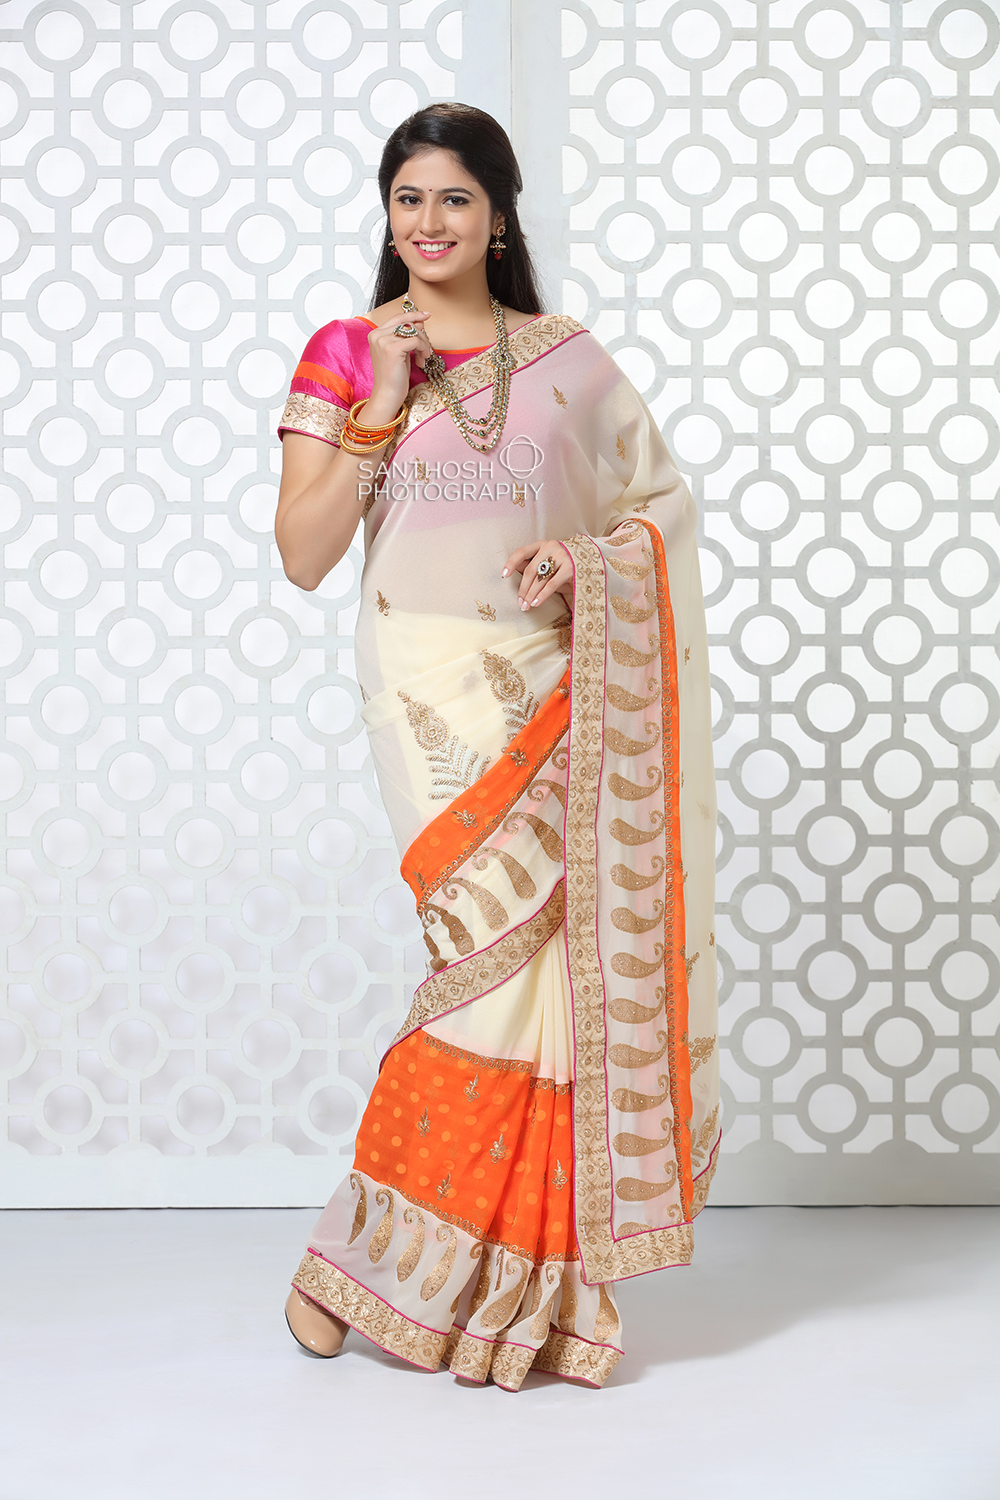 Kanchipuram Silk Saree Photoshoot